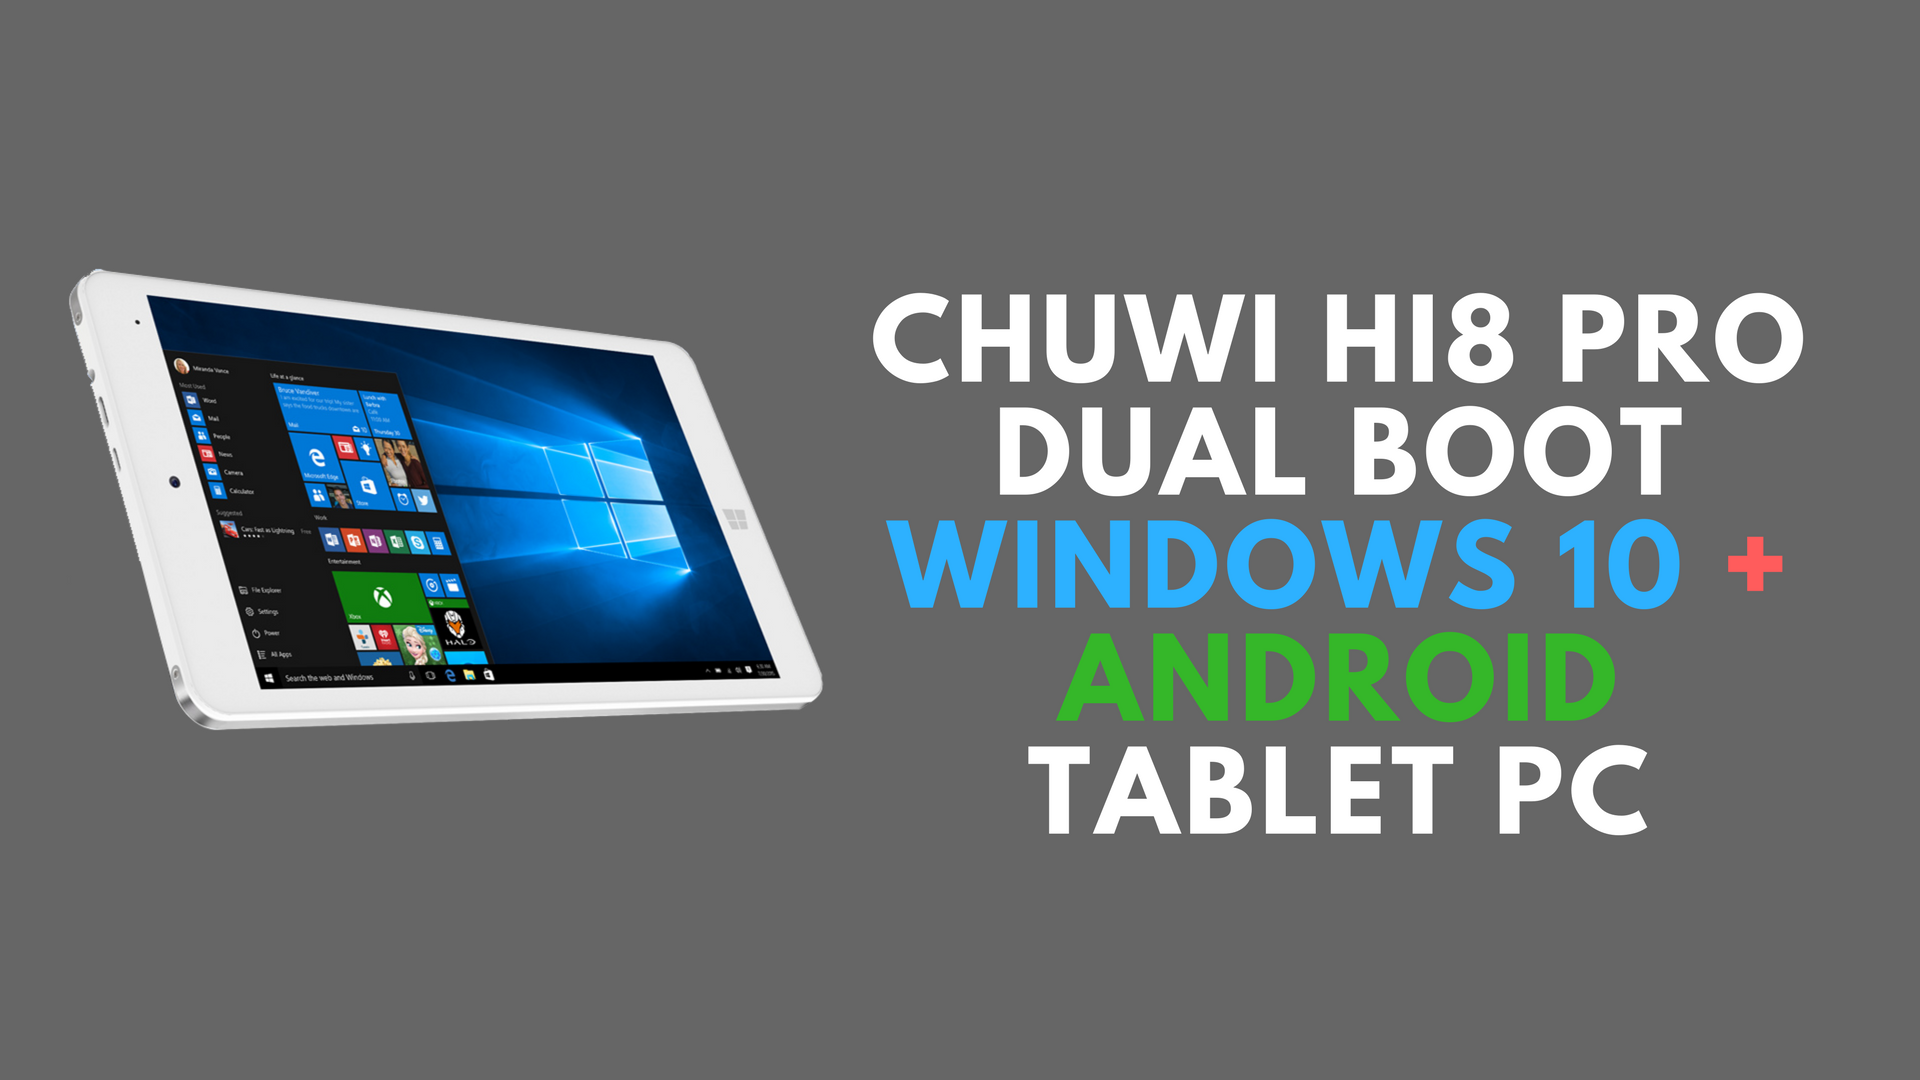 Chuwi Hi8 Pro Dual Boot WINDOWS 10 + ANDROID Tablet PC -